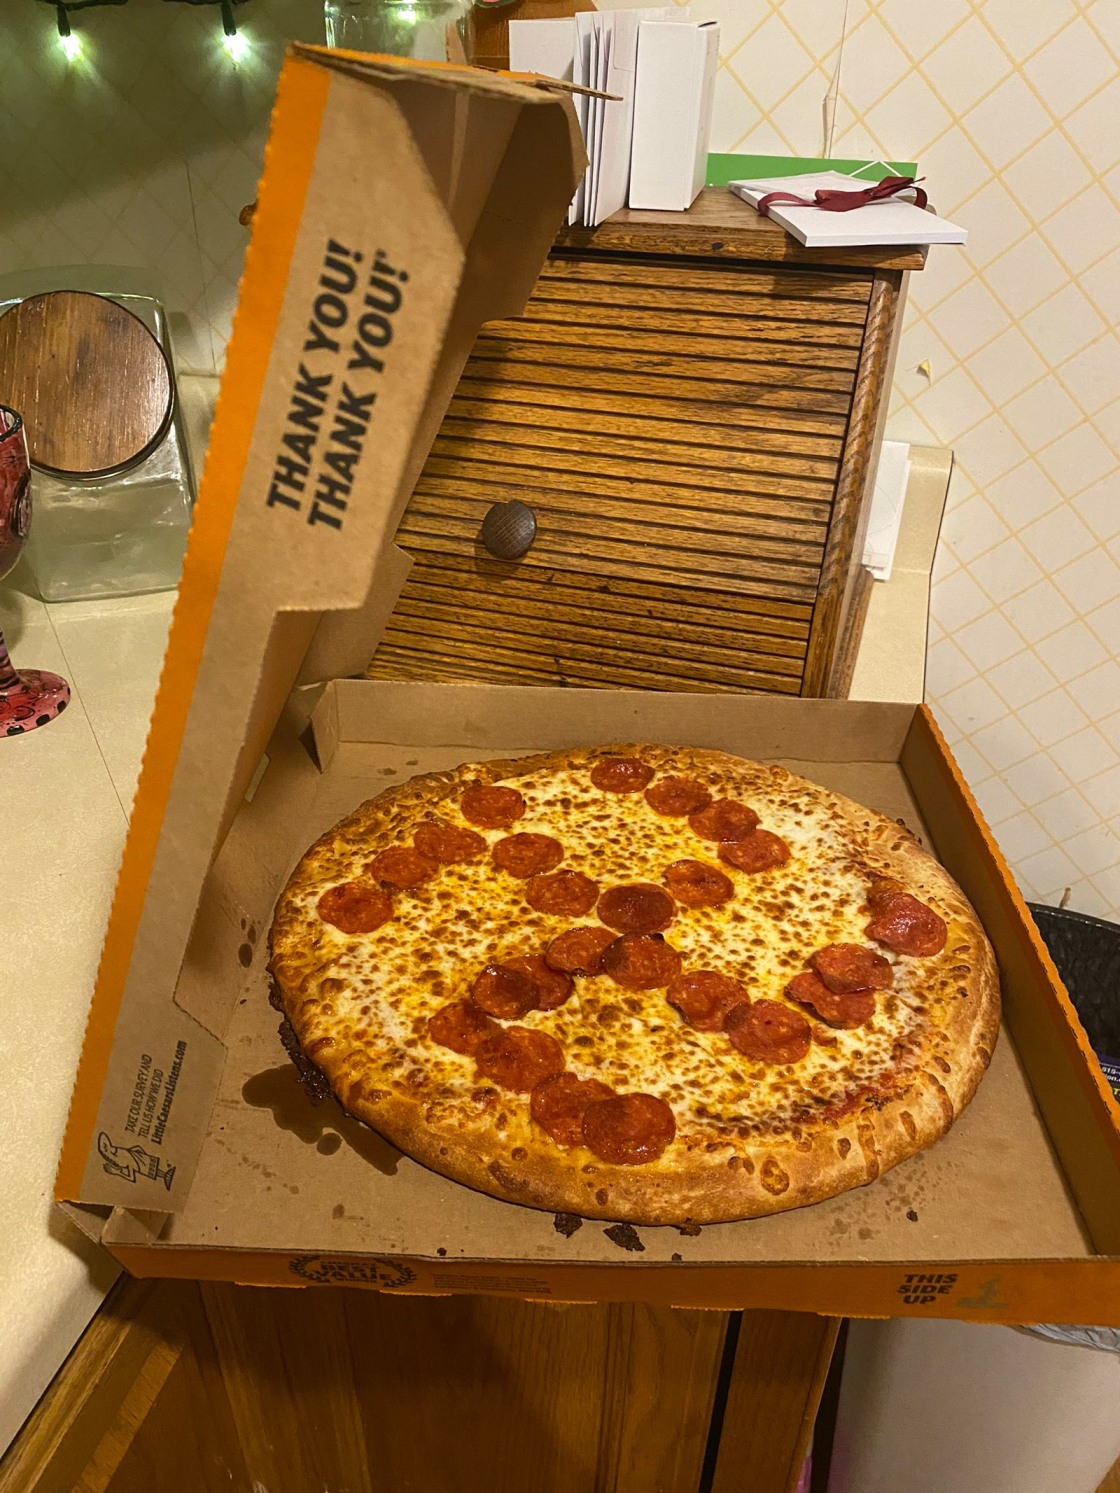 Two employees fired after couple finds swastika made of pepperoni